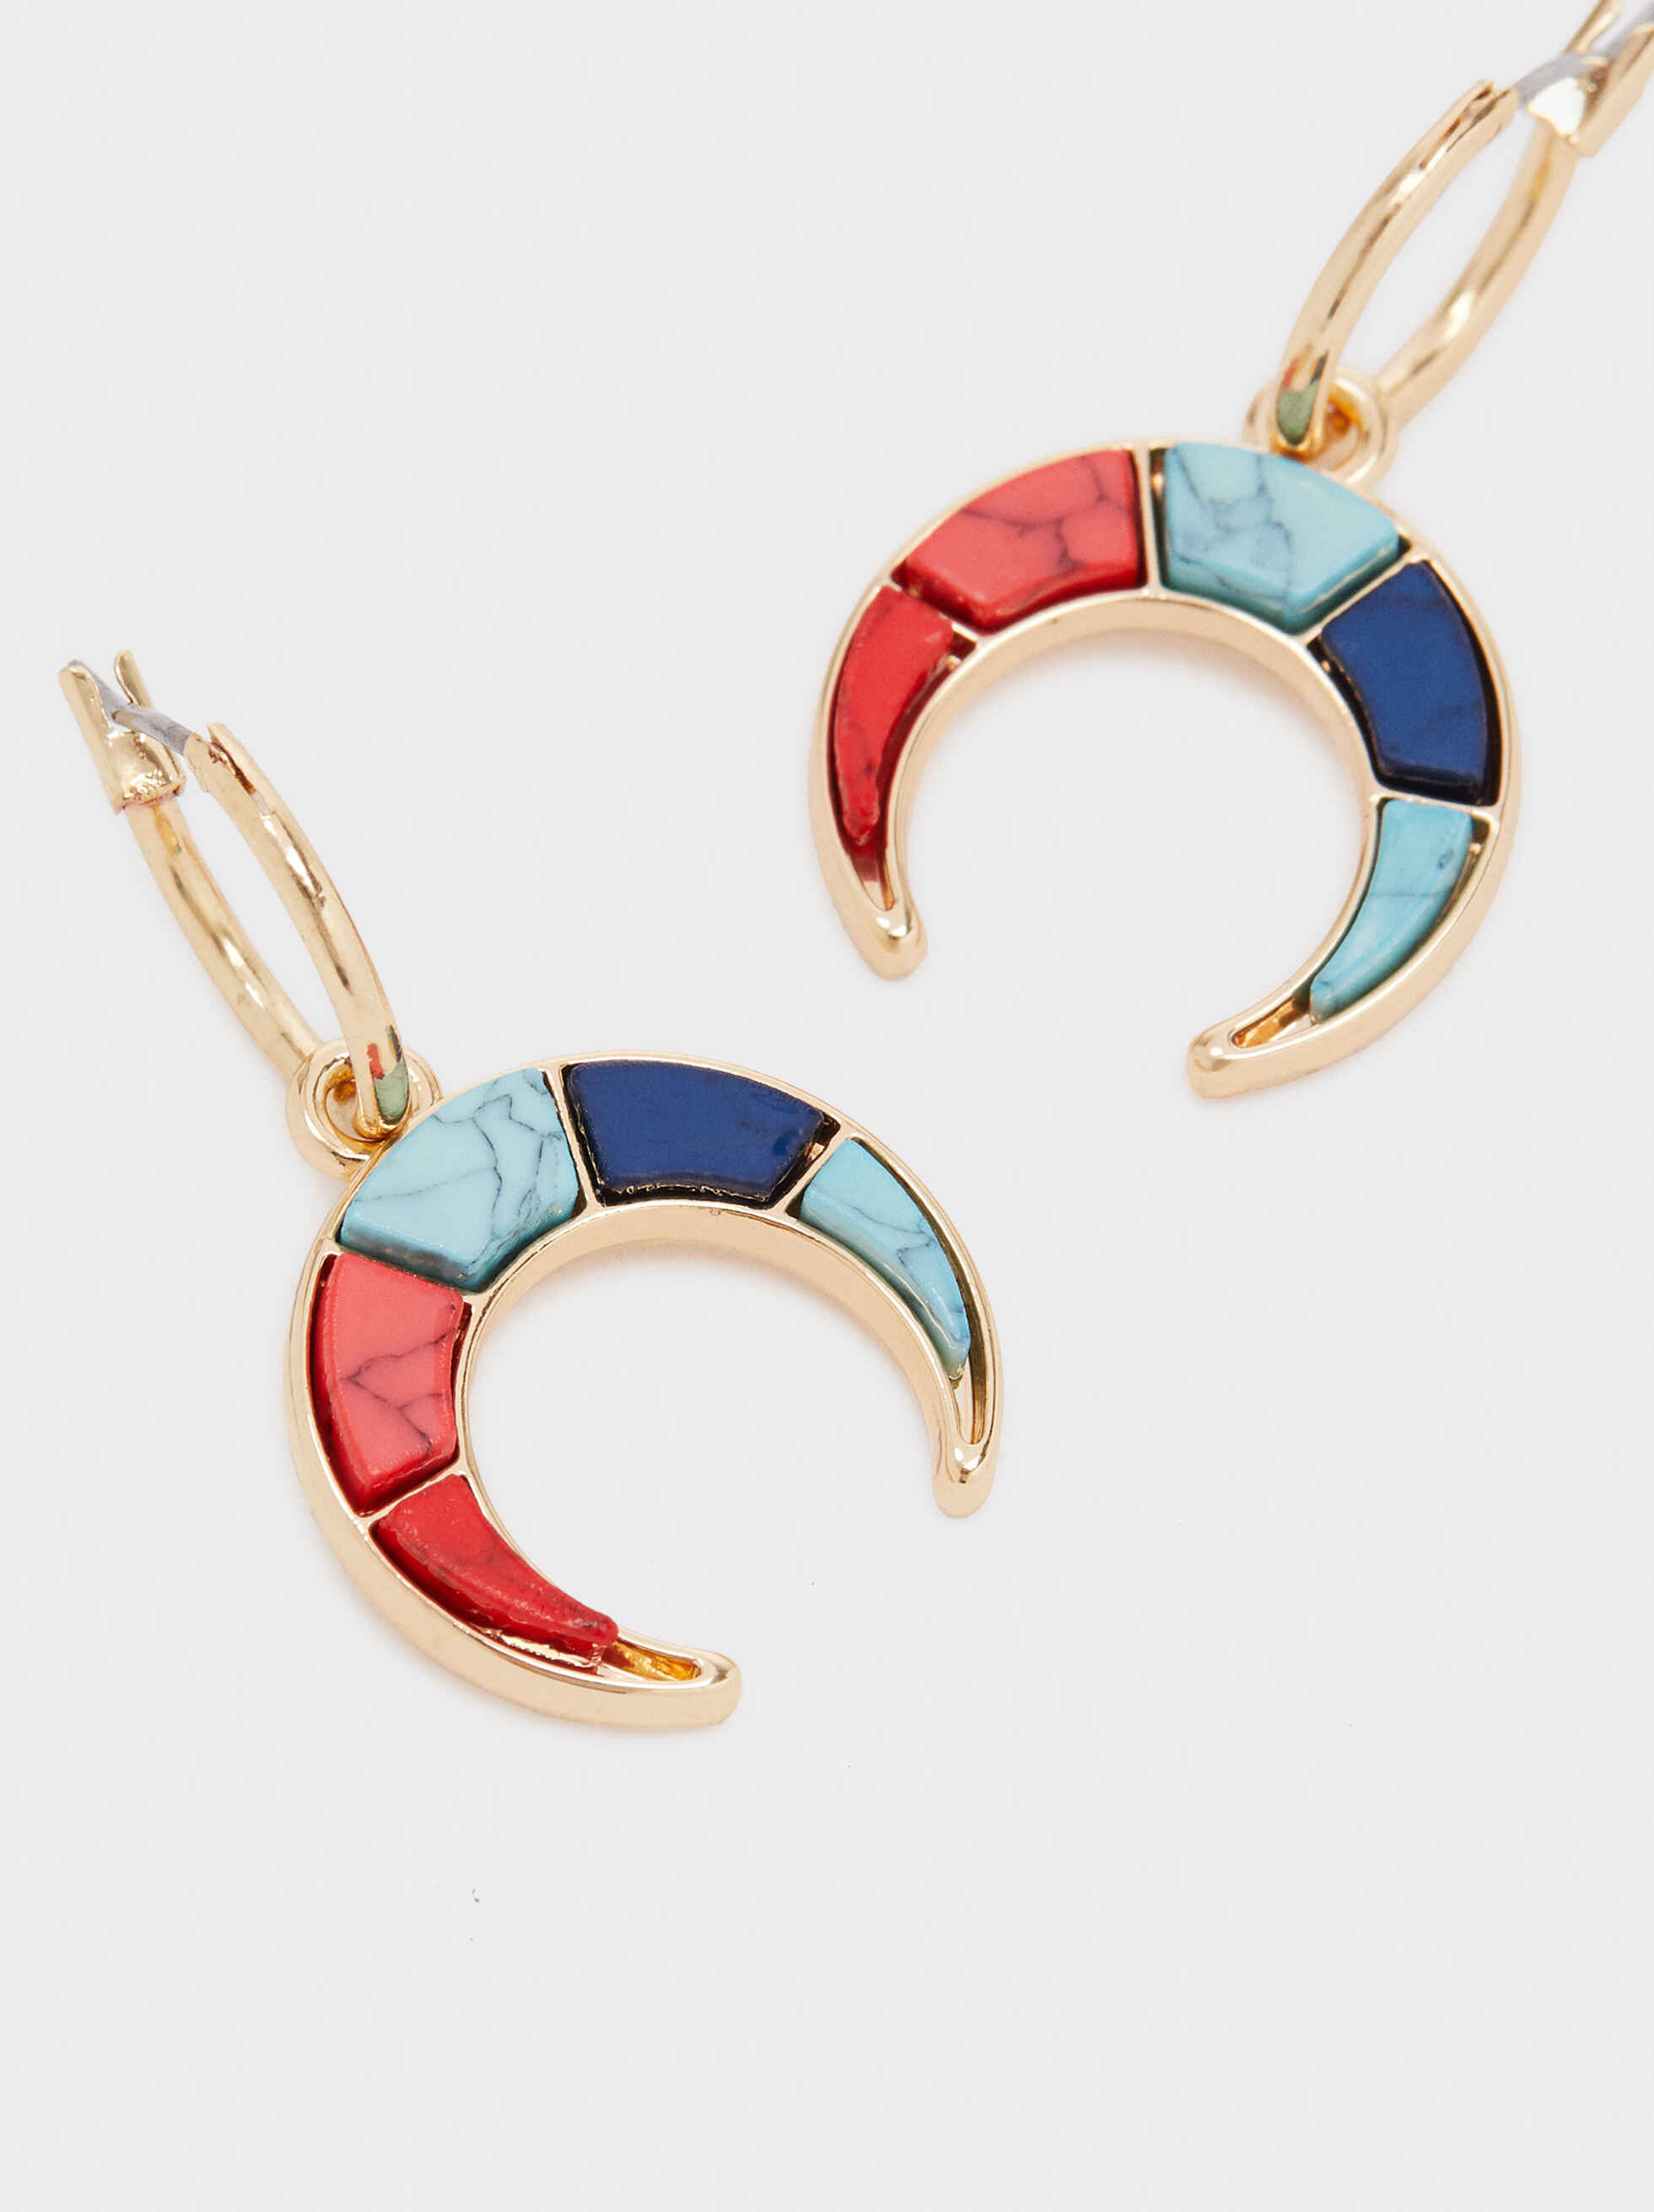 Recife Multi-Coloured Dangle Earrings, Multicolor, hi-res